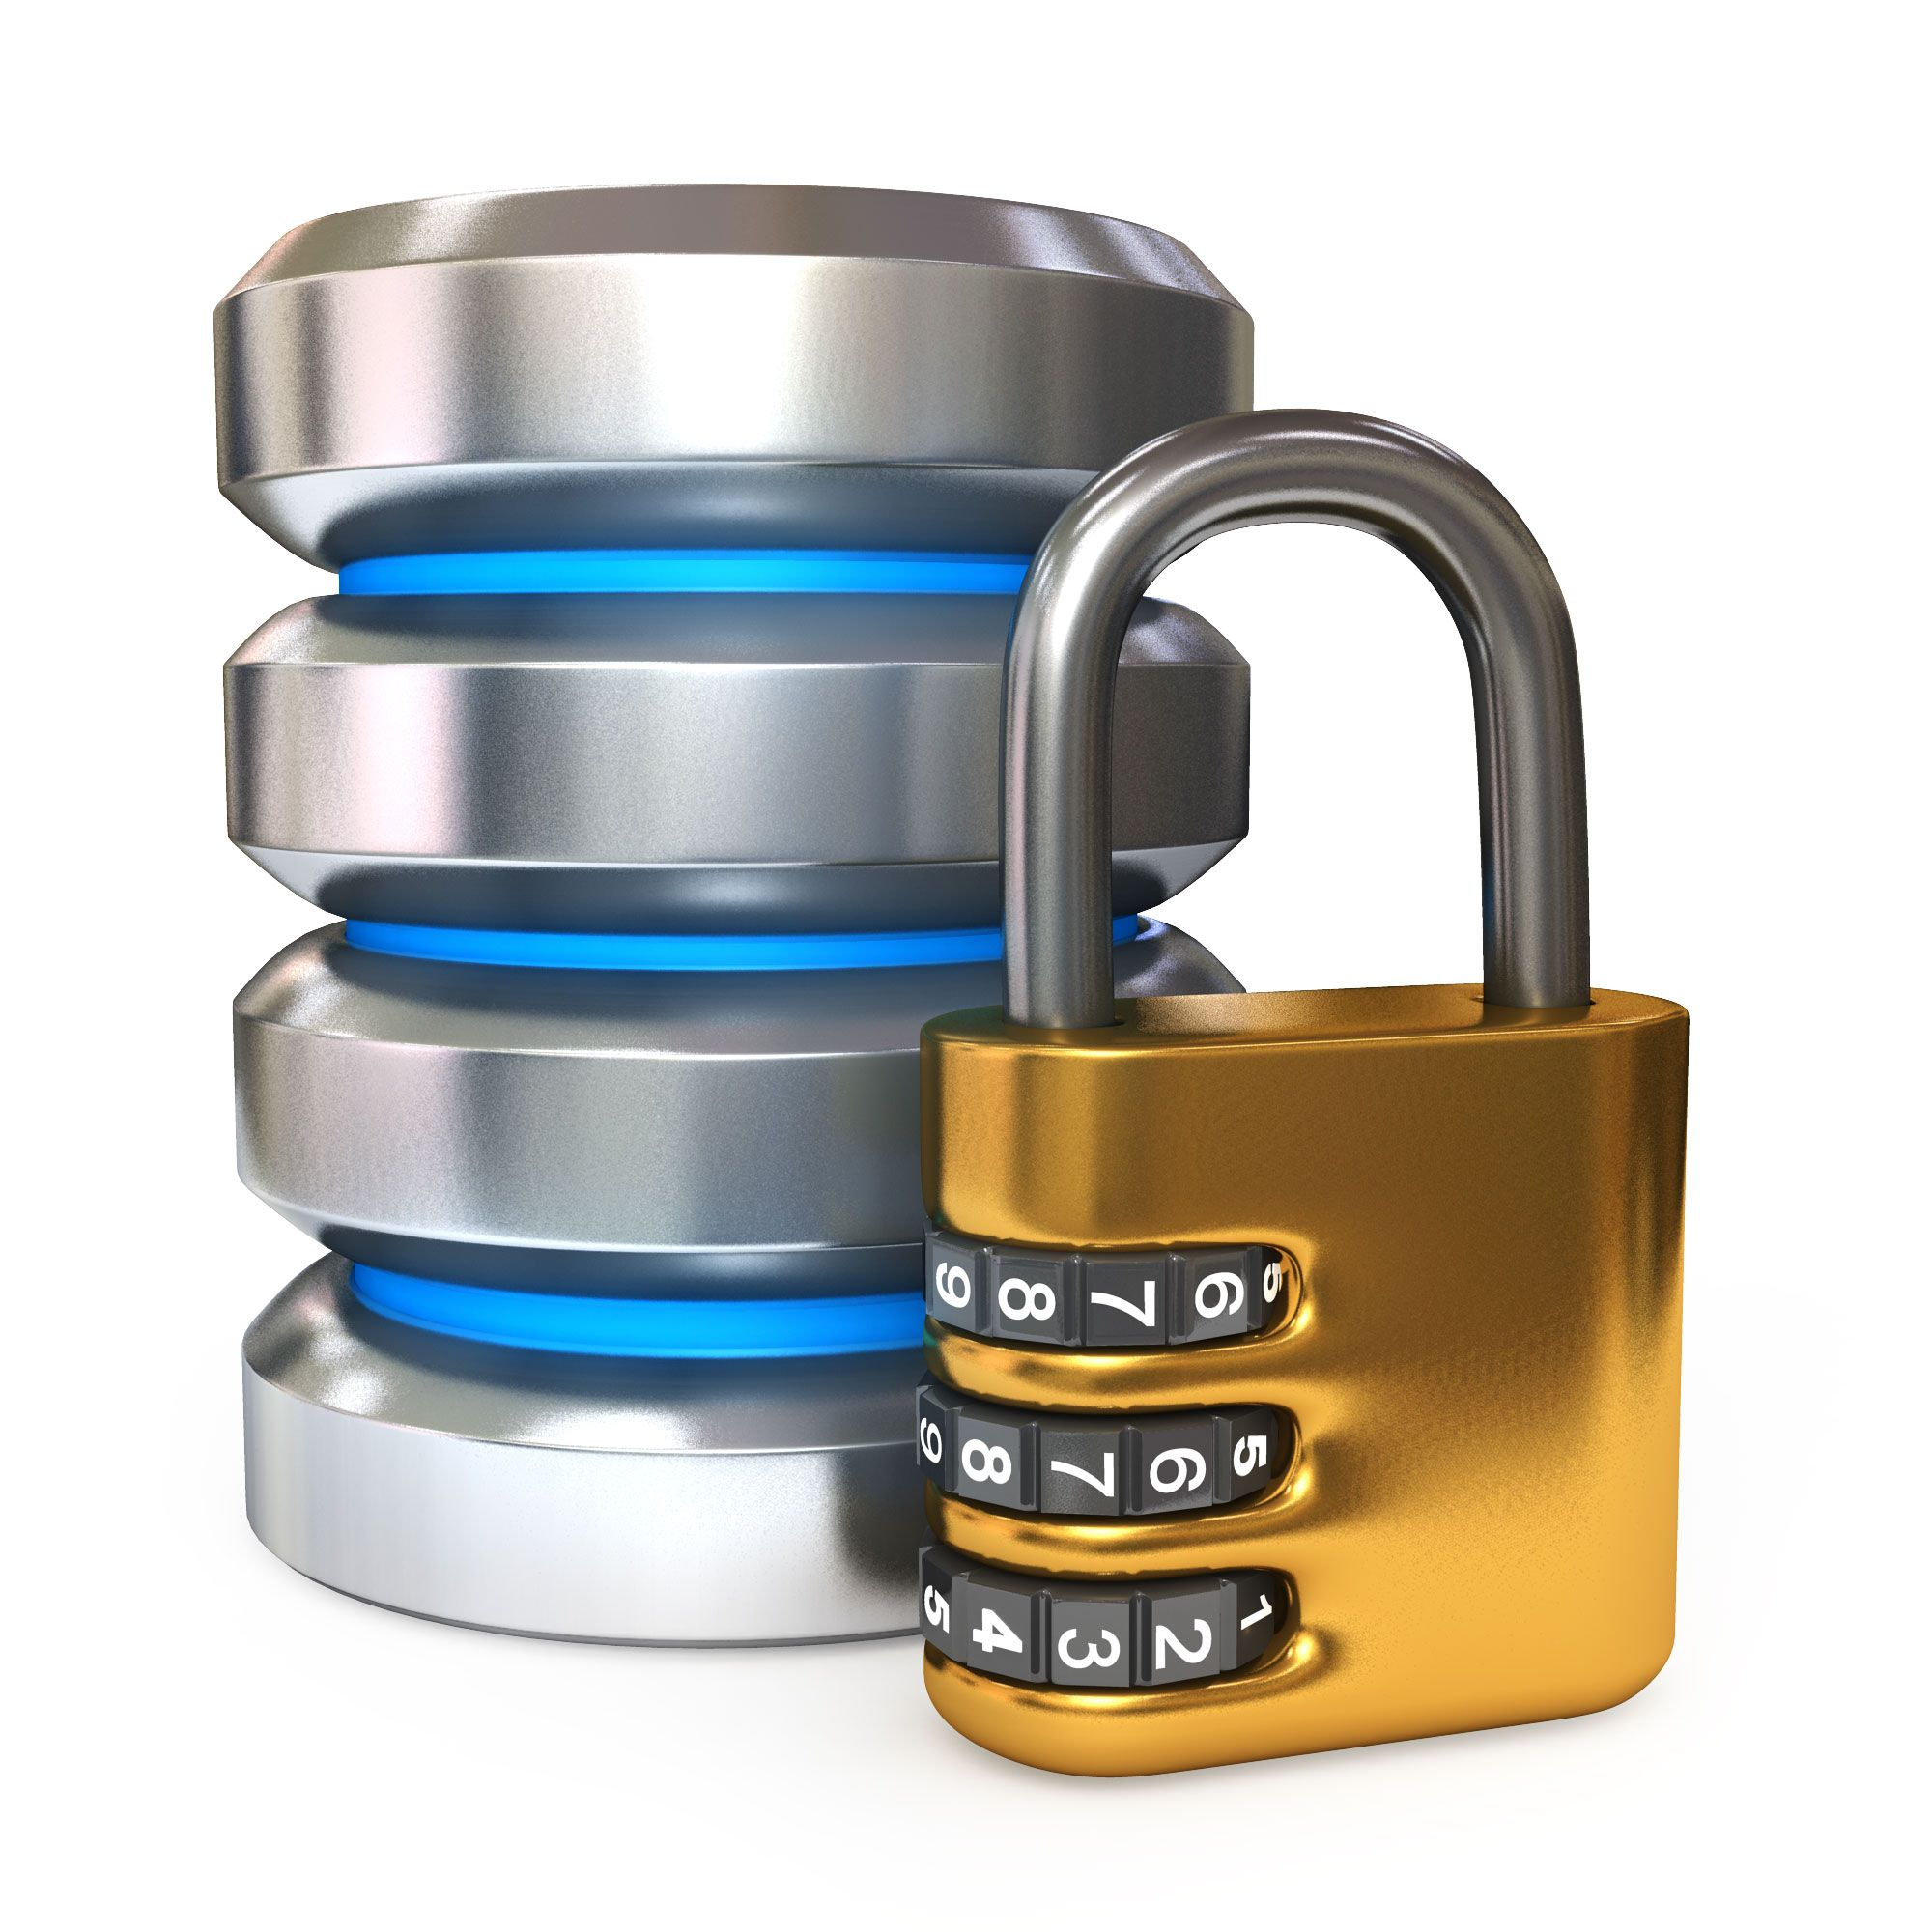 0914_database_icon_with_combination_lock_for_security_stock_photo_Slide01